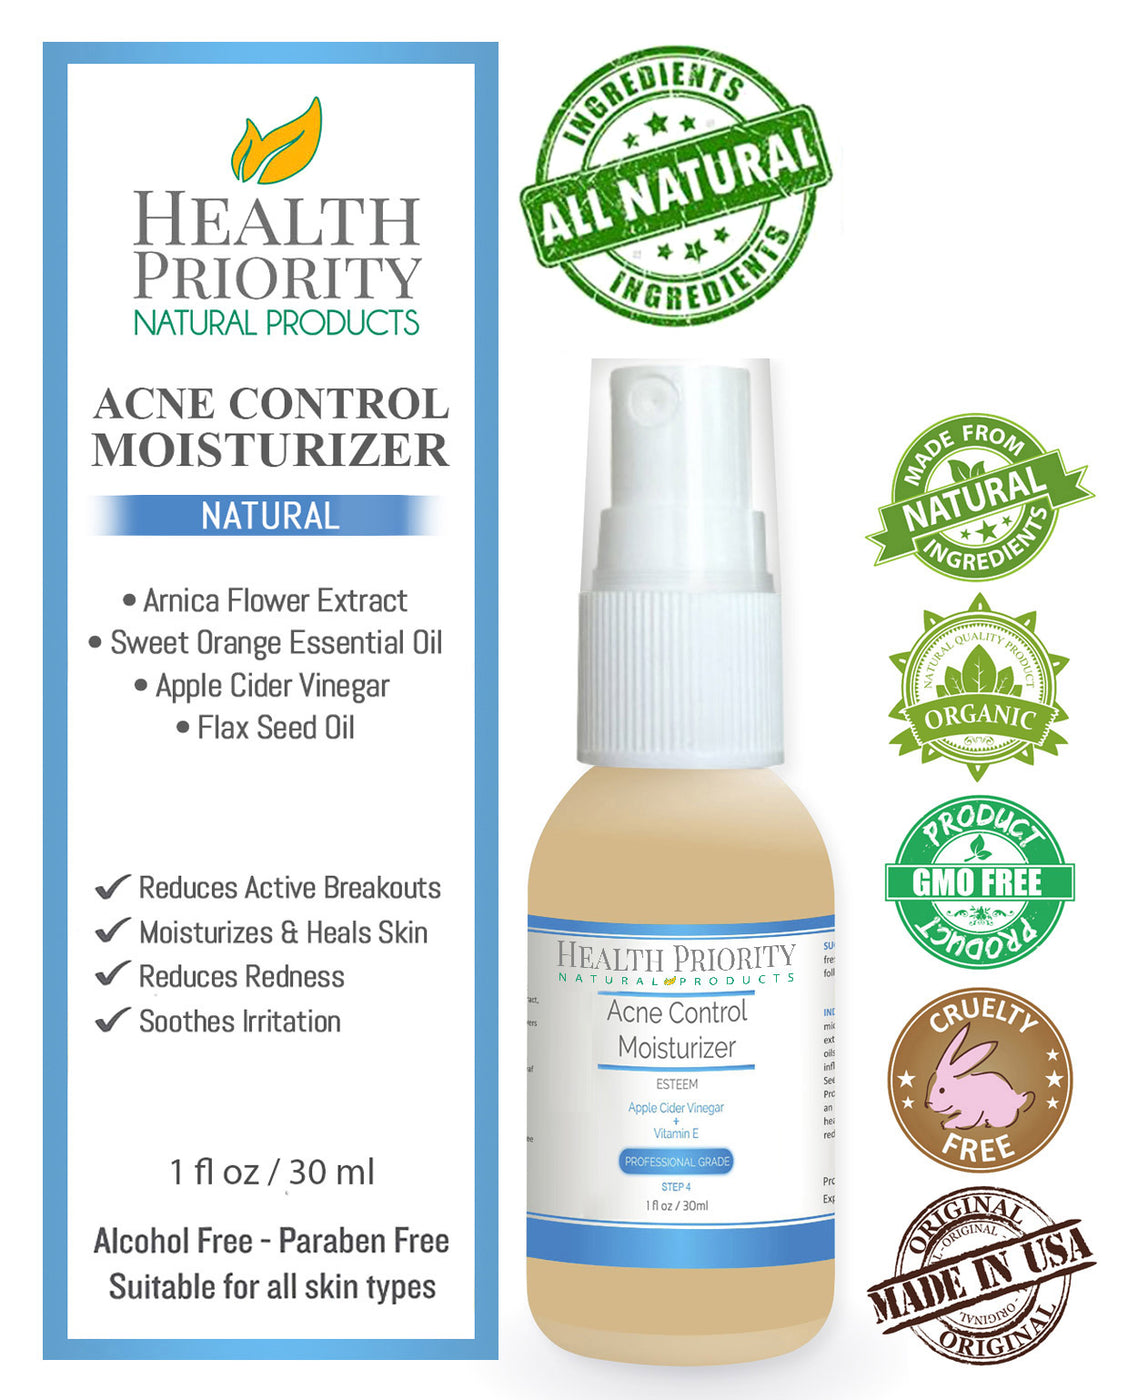 Natural & Organic Proactive Acne Moisturizer